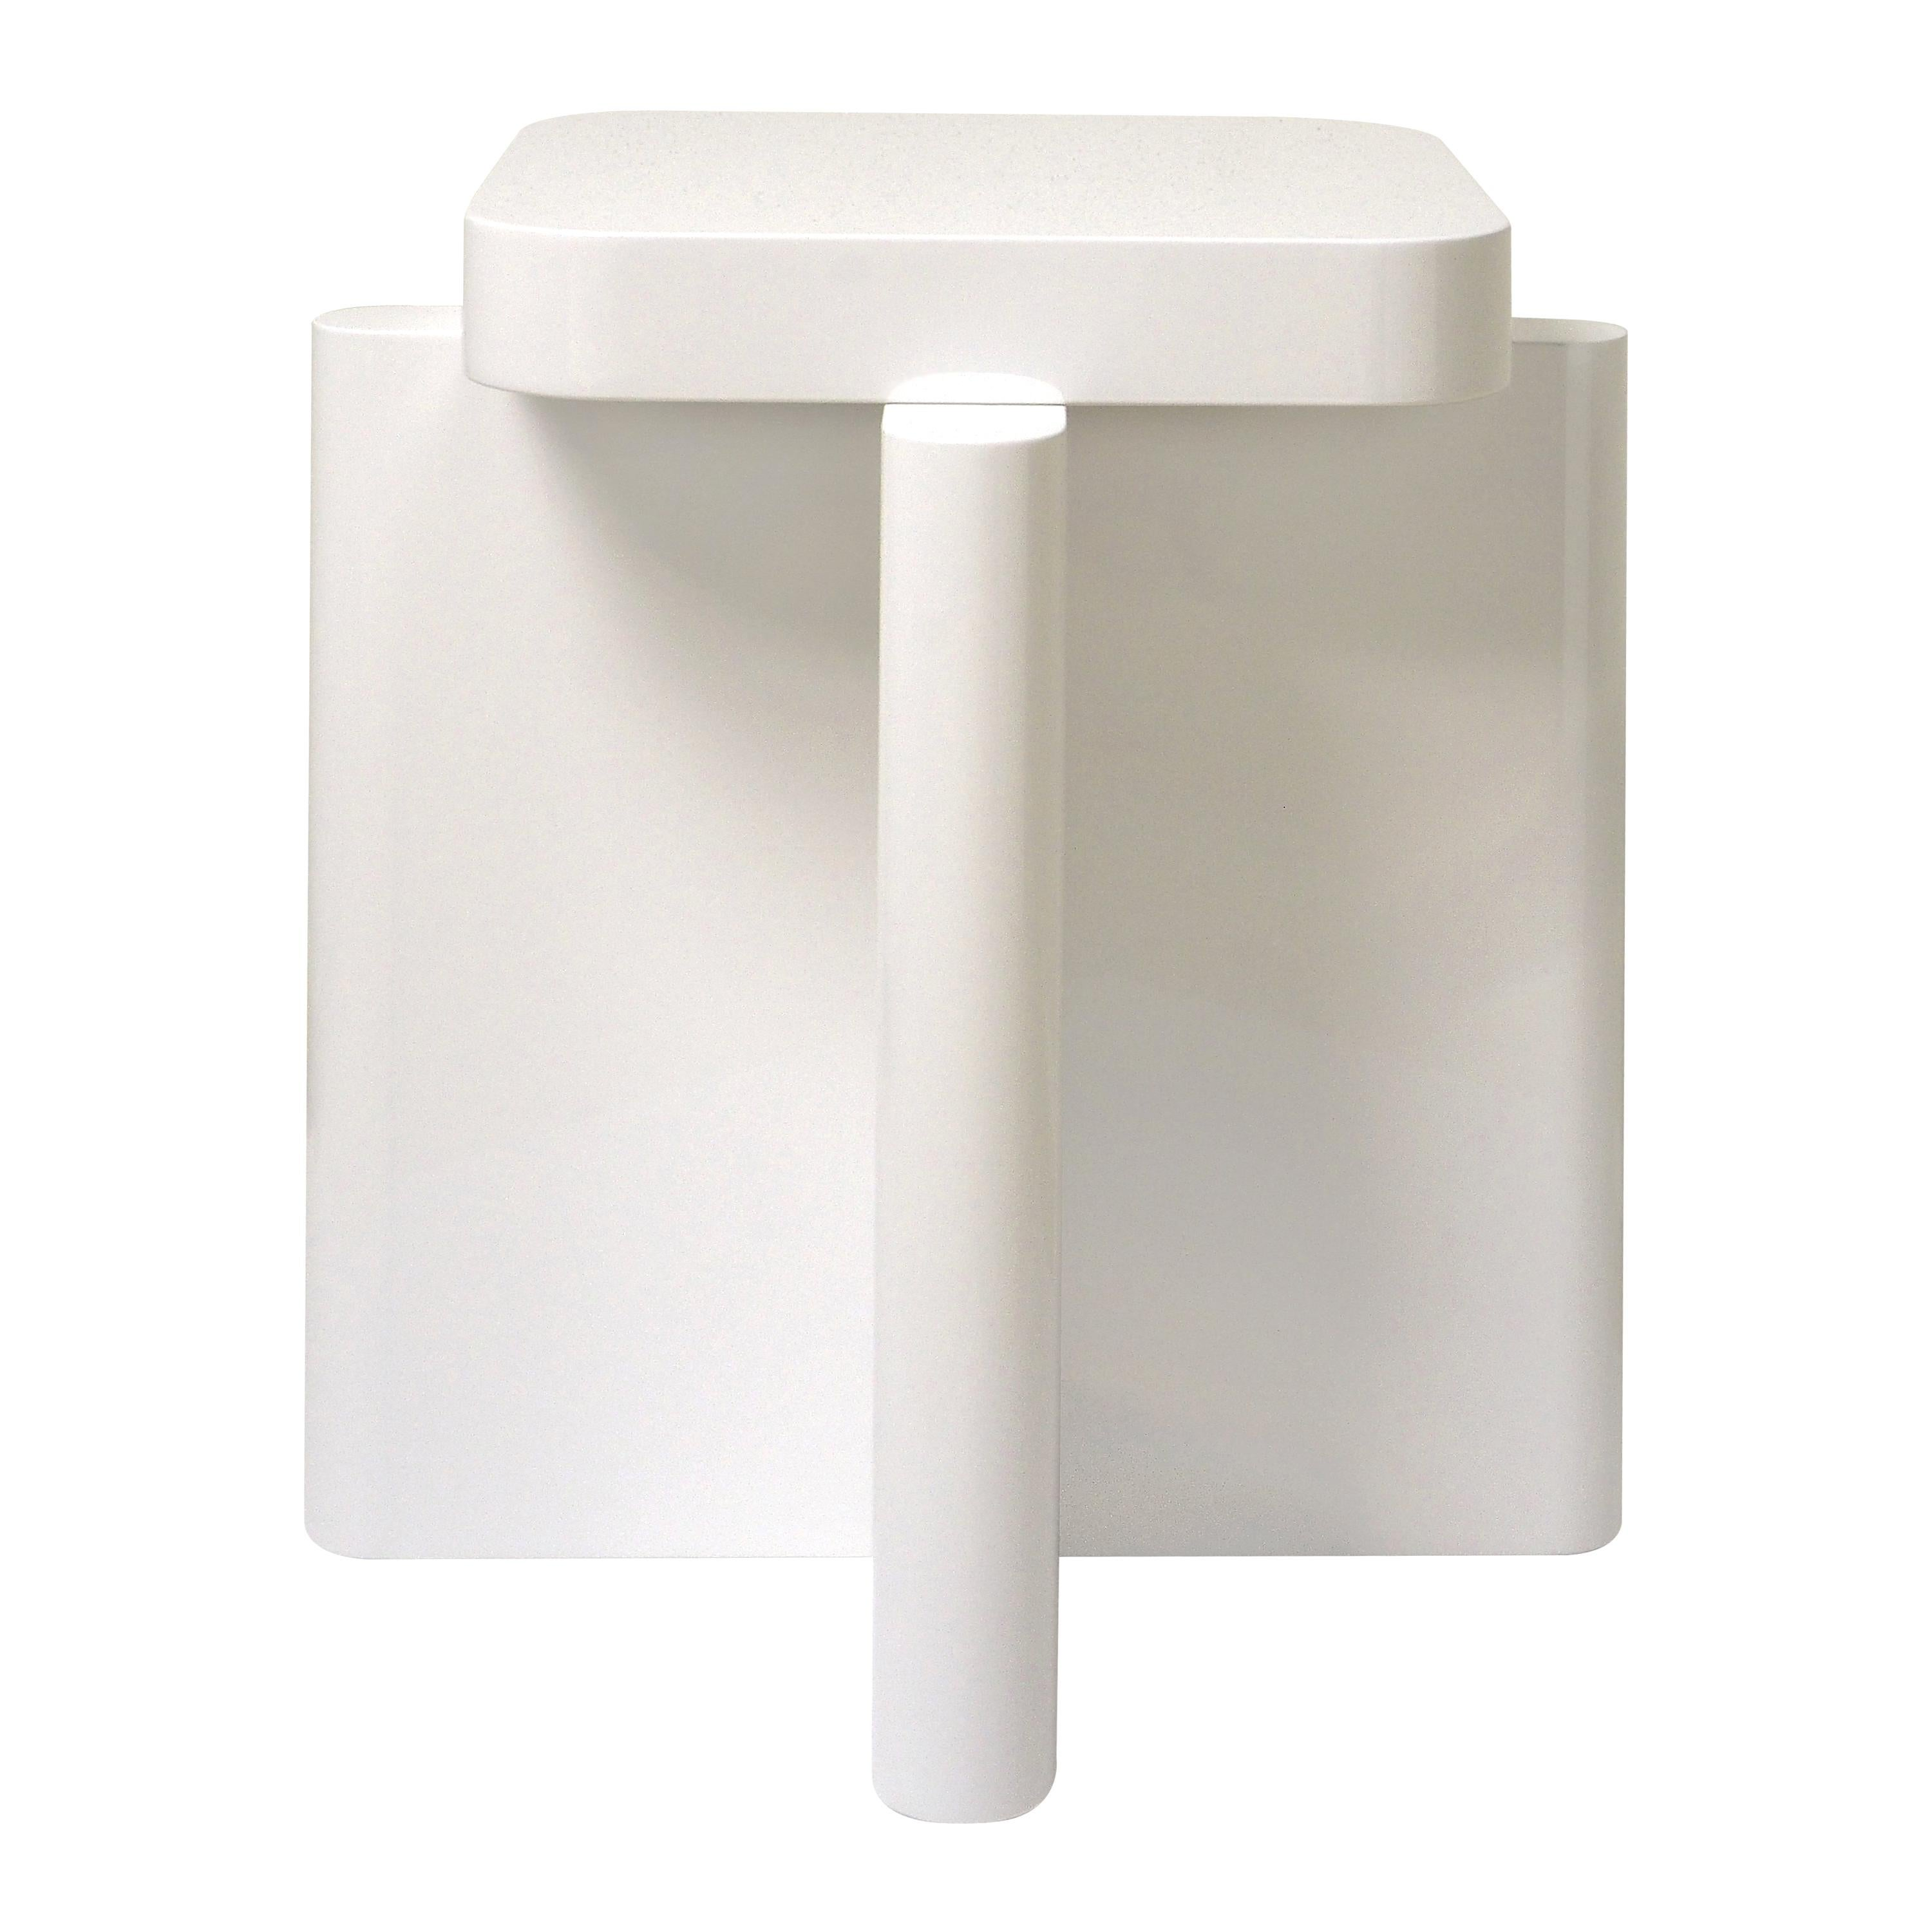 Spina Side Table in Lac Wood Off-White 1 Edited by Portego